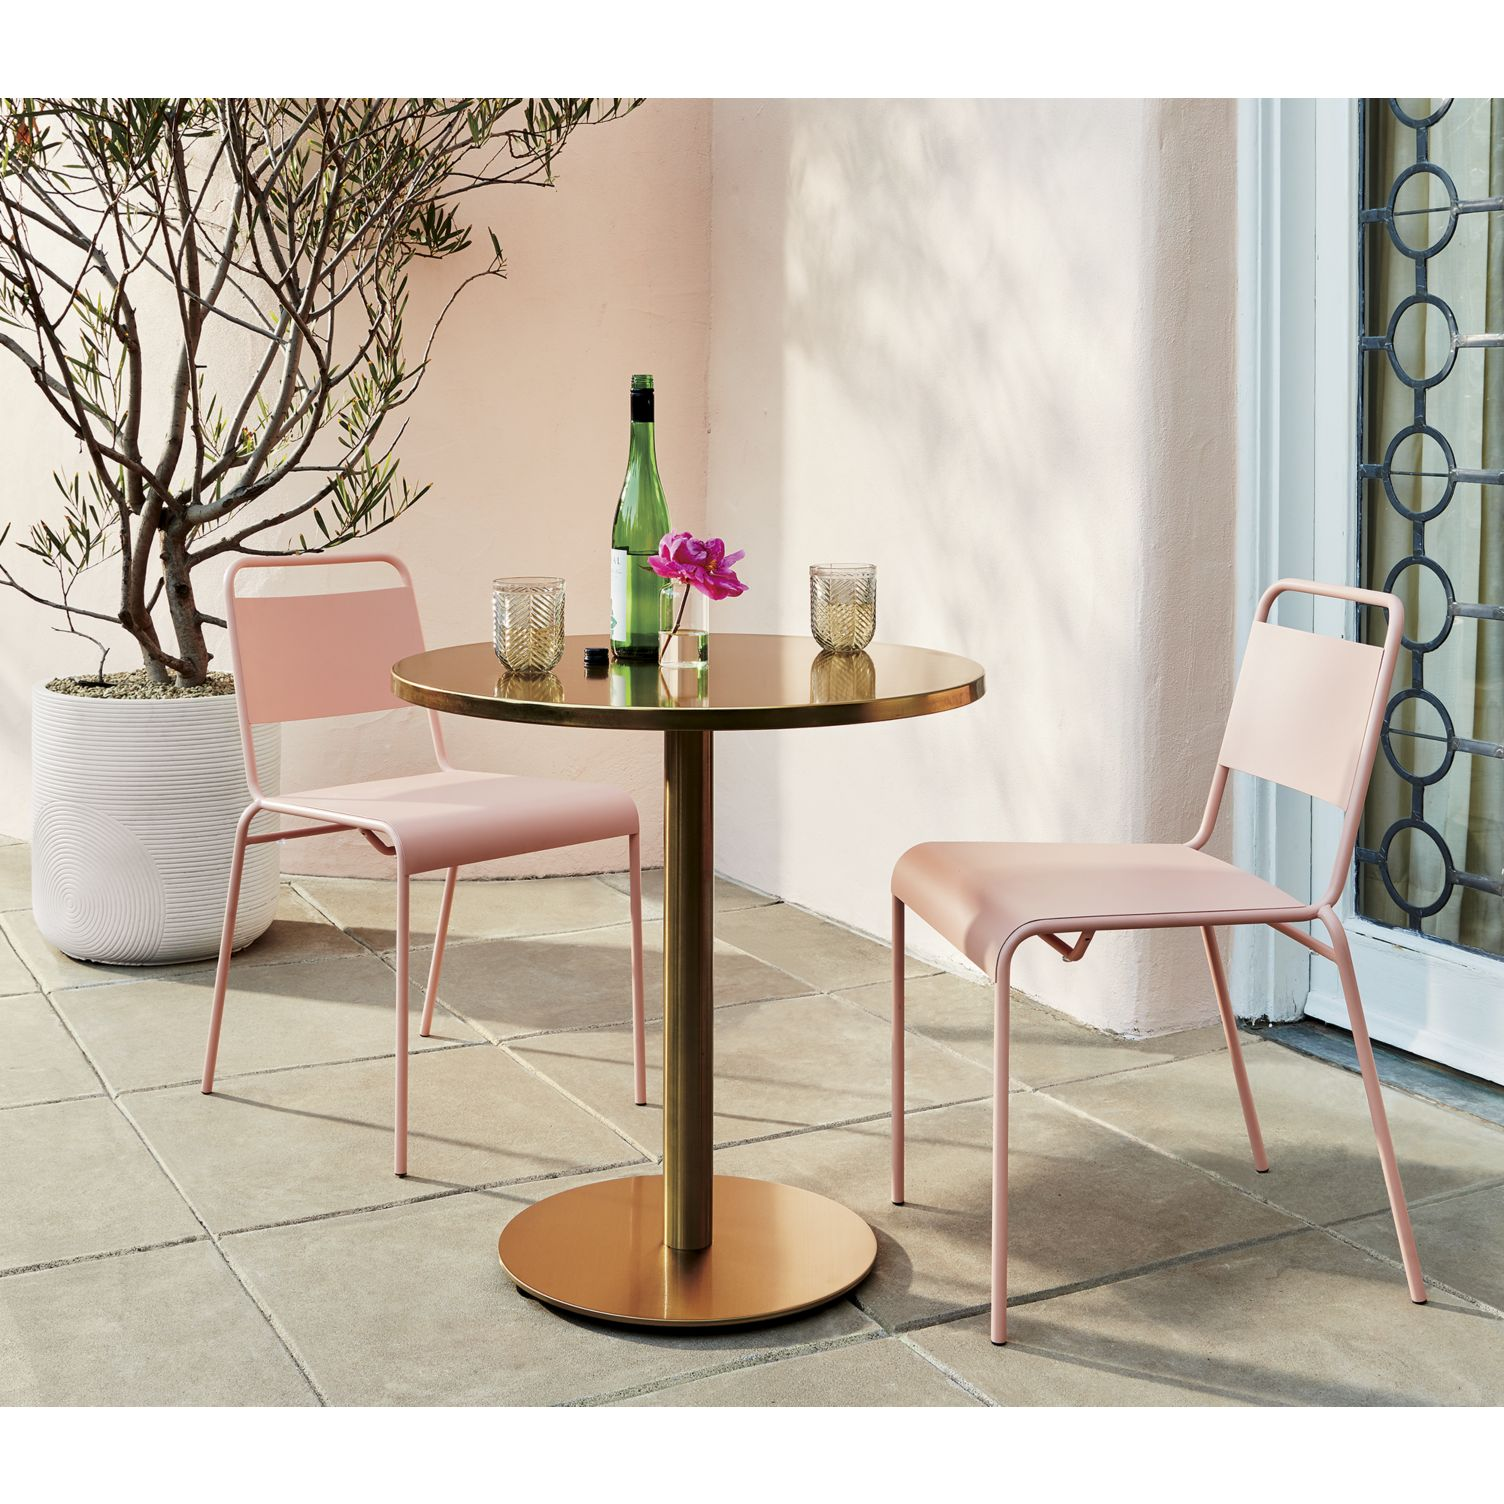 Peachy pink patio furniture from CB2